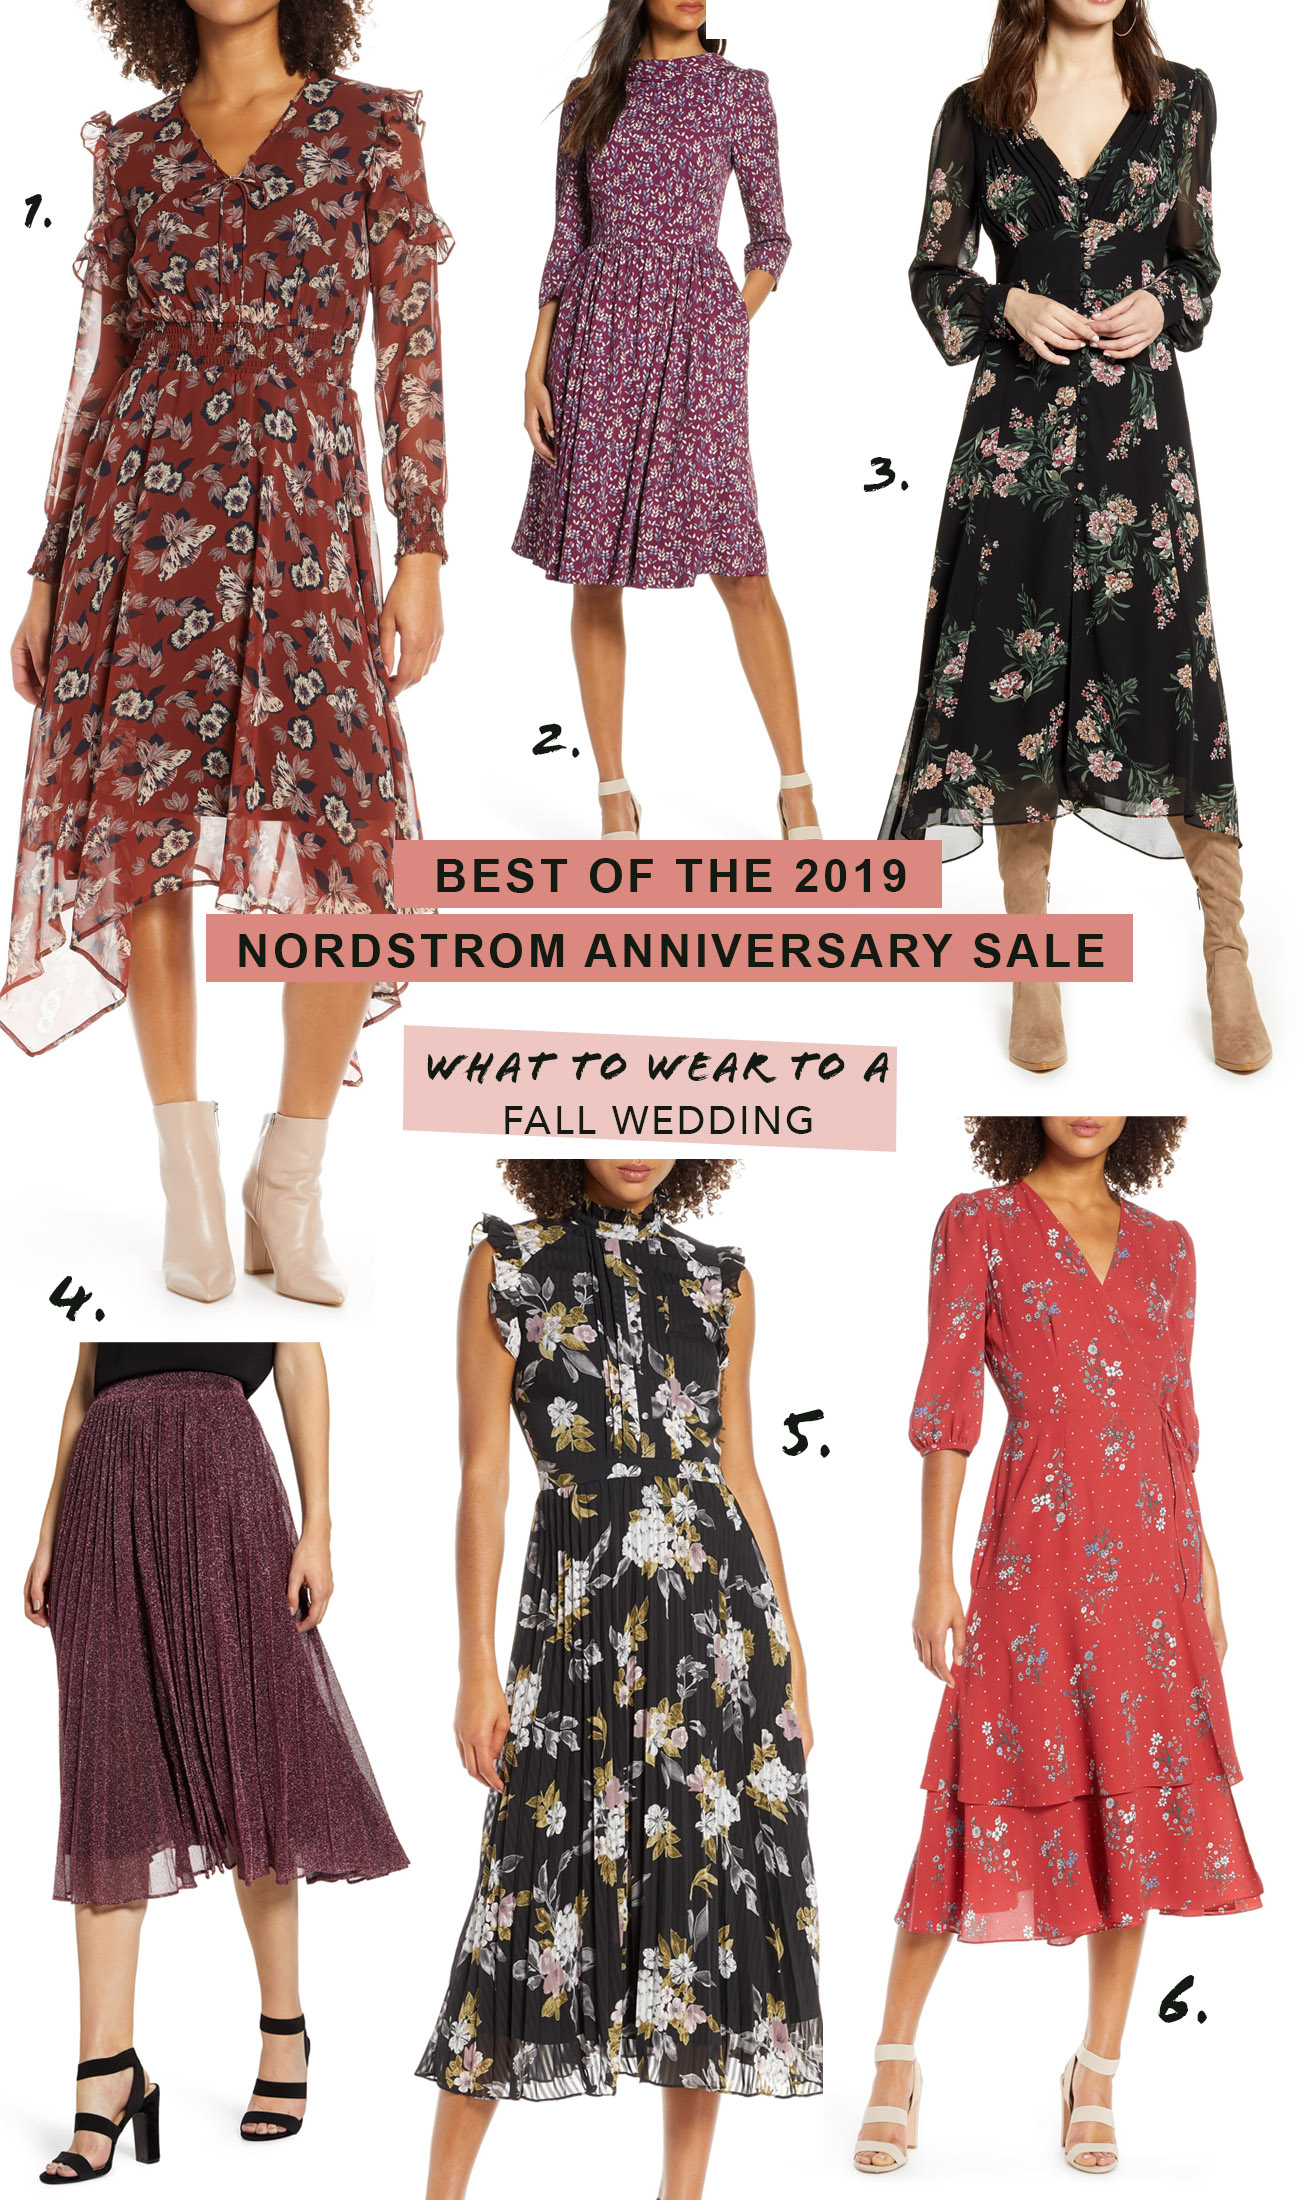 Nordstrom Anniversary Sale - Favorite Dresses to wear to a Fall Wedding